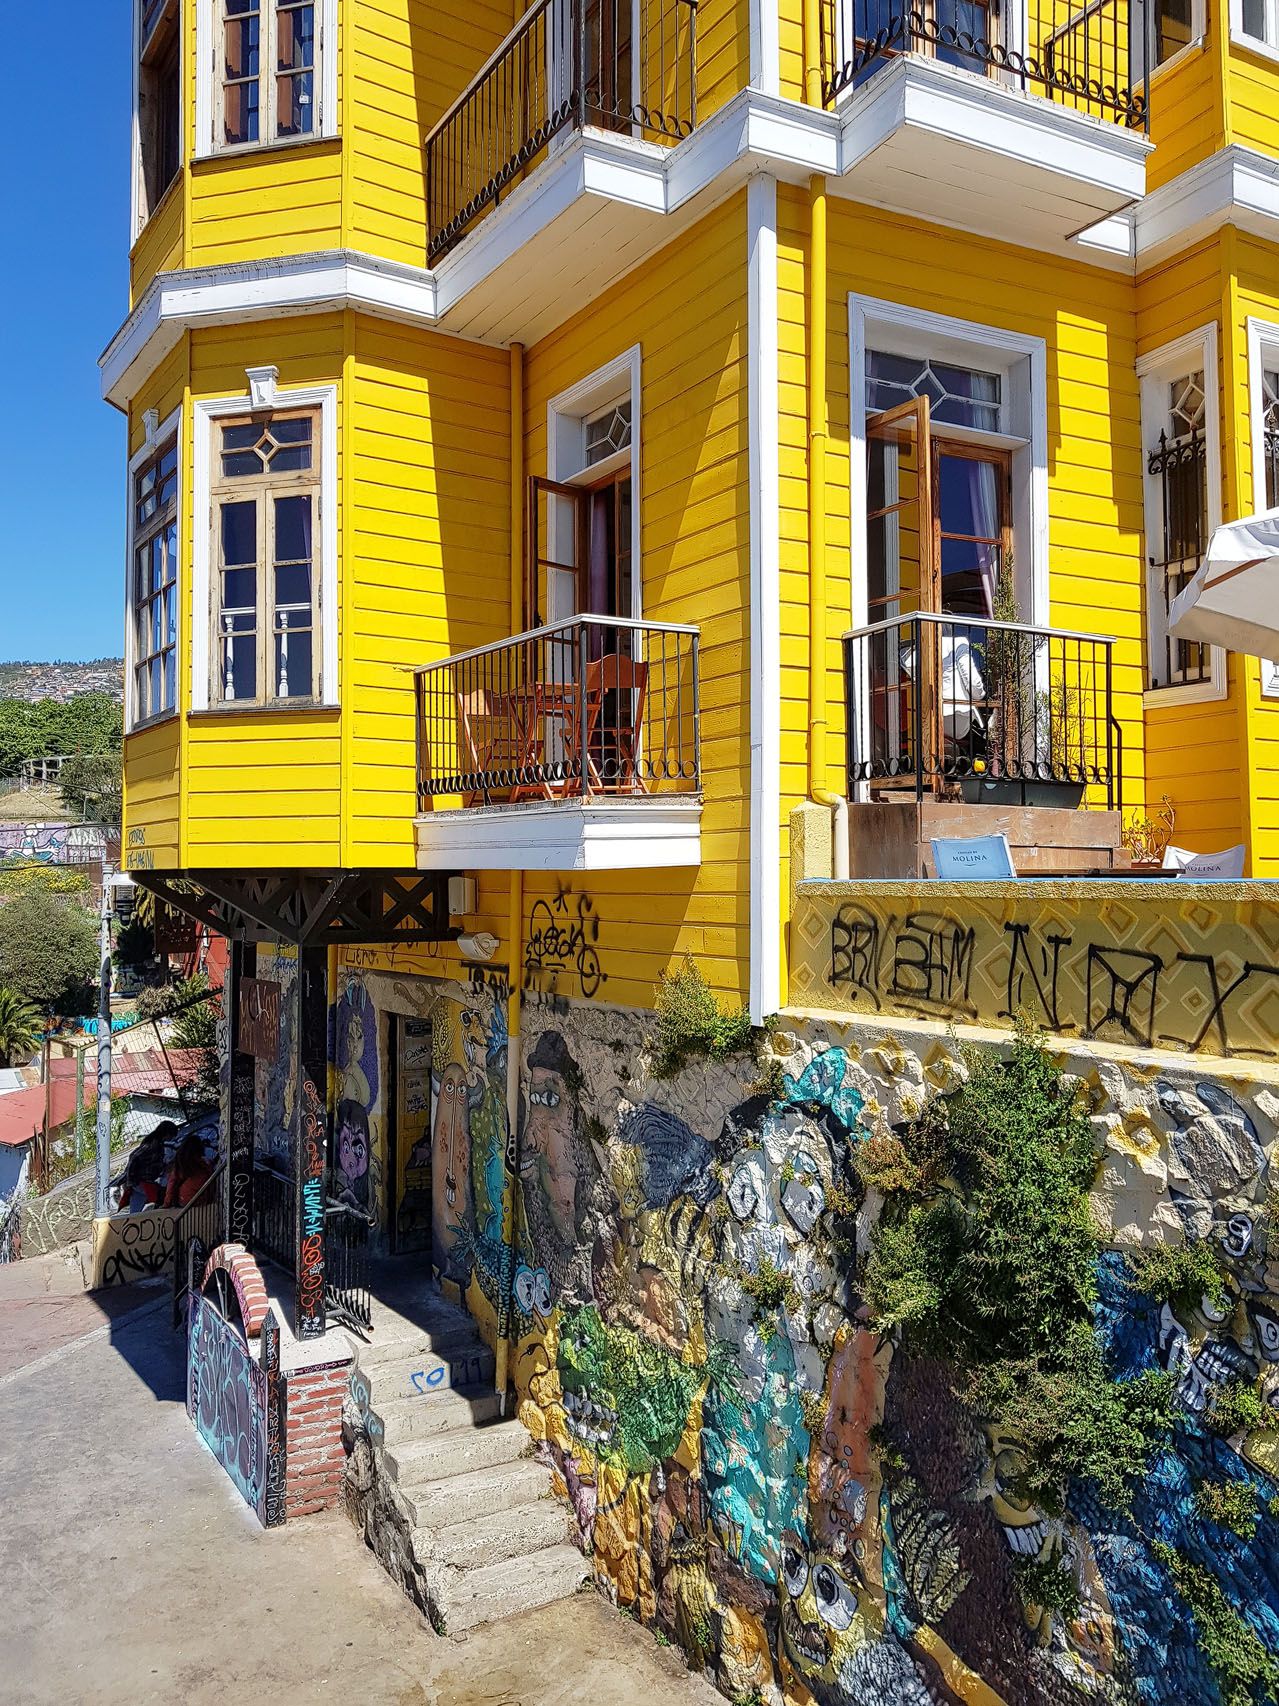 Am Cerro (Hügel) Bellavista in Valparaiso